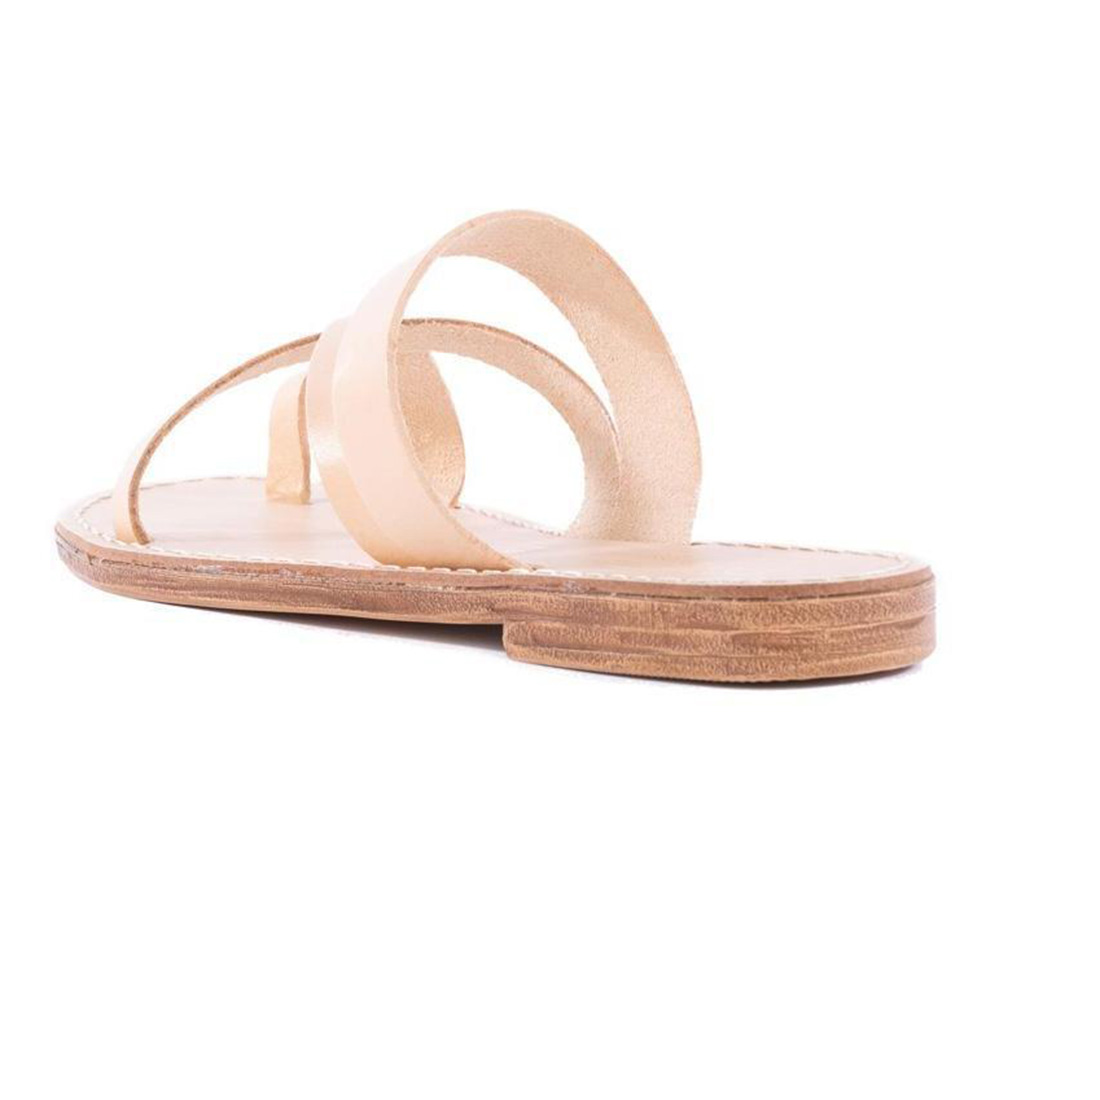 Seychelles So Precious Vacchetta Leather Sandal 40310